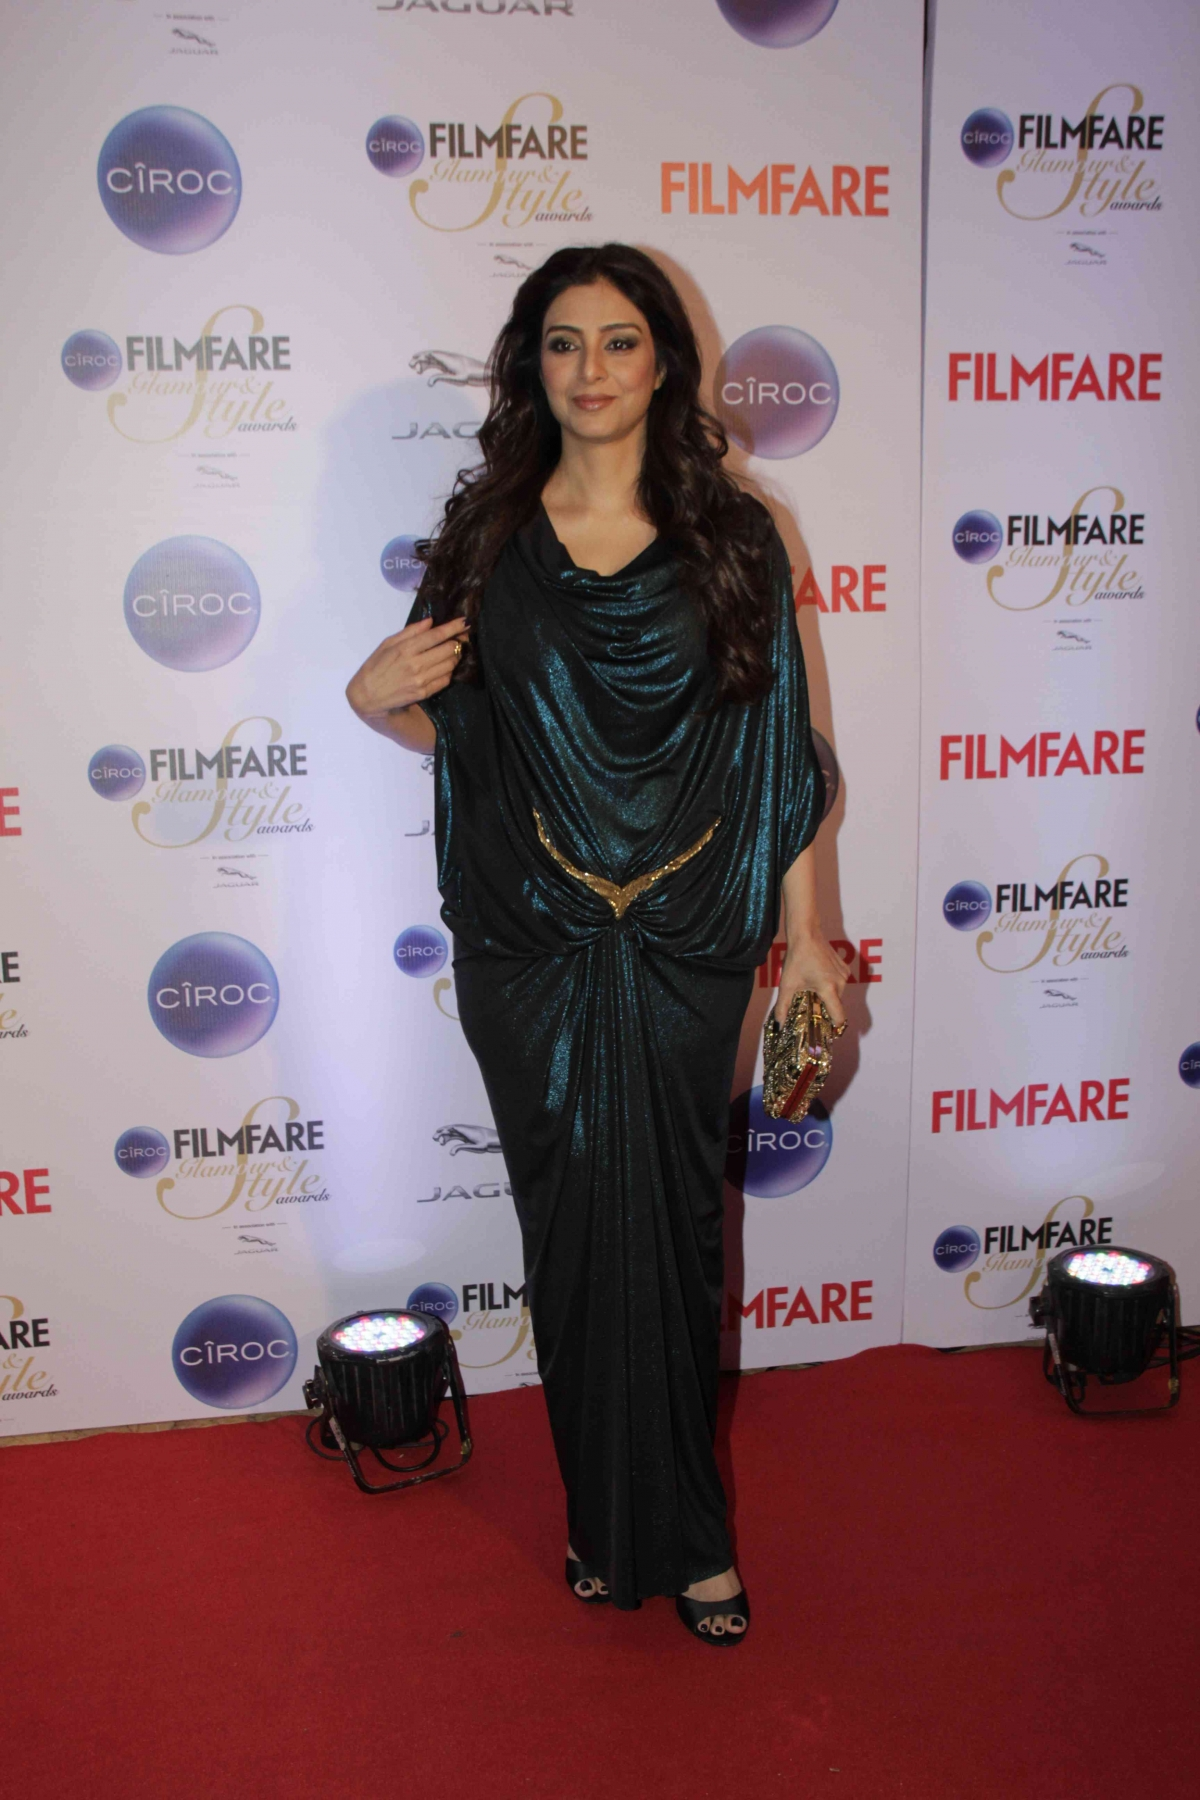 http://data1.ibtimes.co.in/en/full/564741/filmfare-glamour-style-awards-2015-sonam-kapoor-shruti-haasan-other-worst-dressed-celebs.jpg